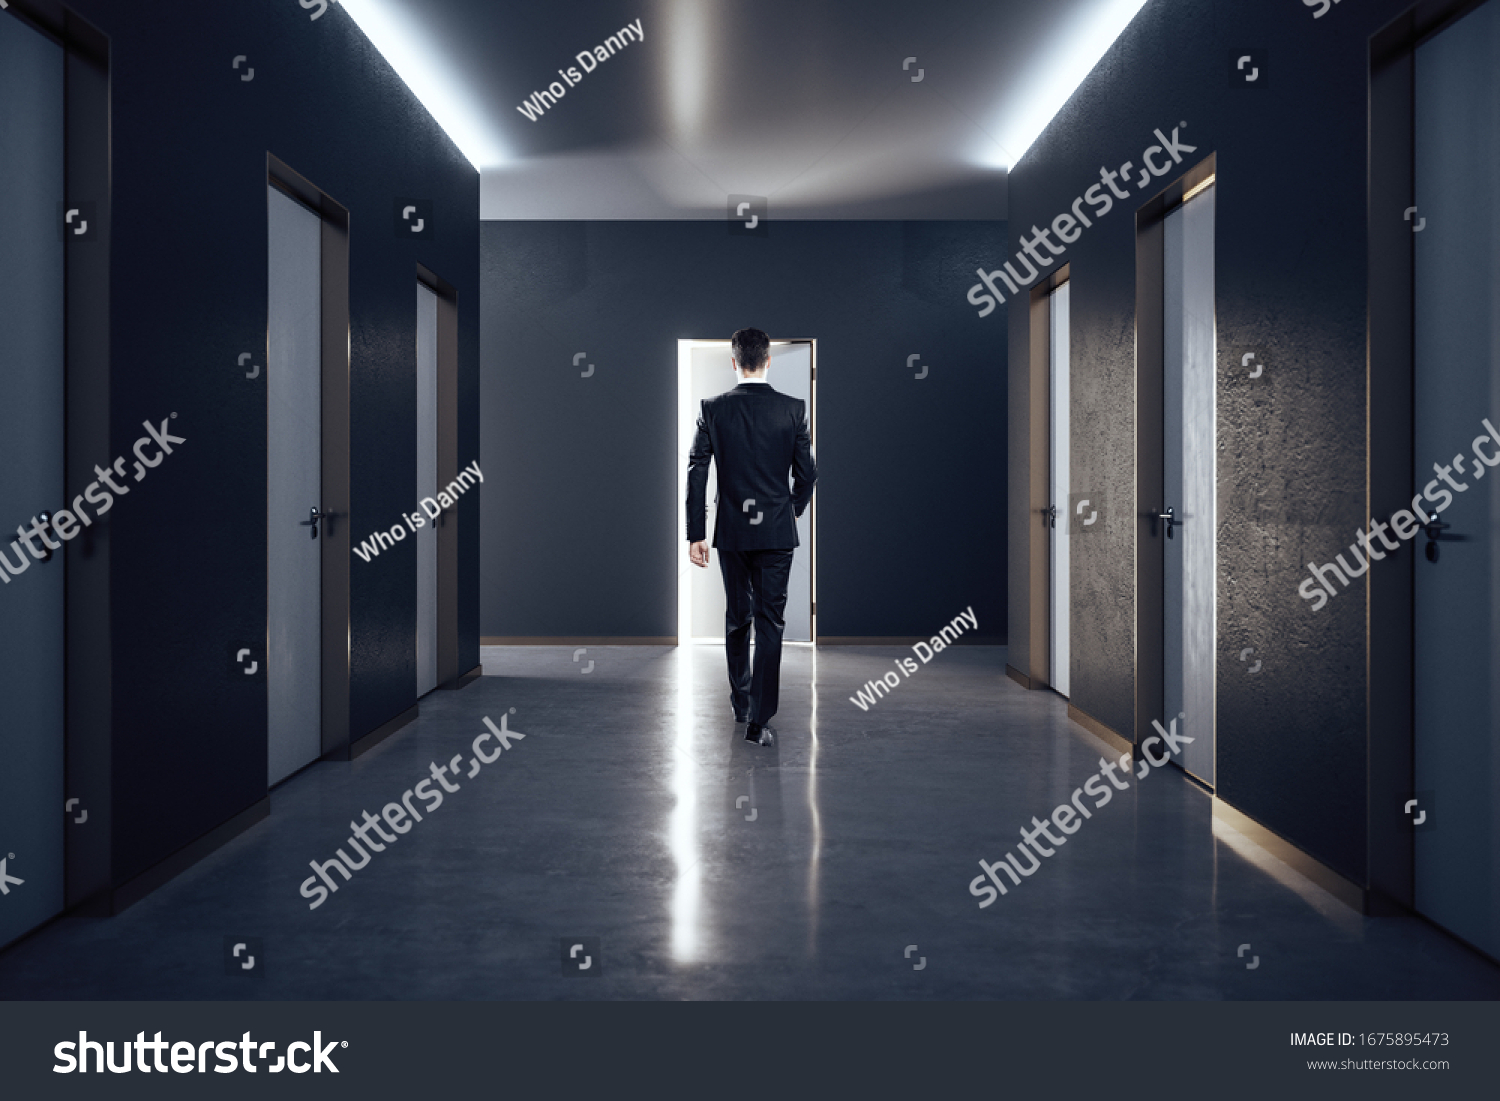 Businessman in hall interior with closed doors. Design and style concept. #1675895473